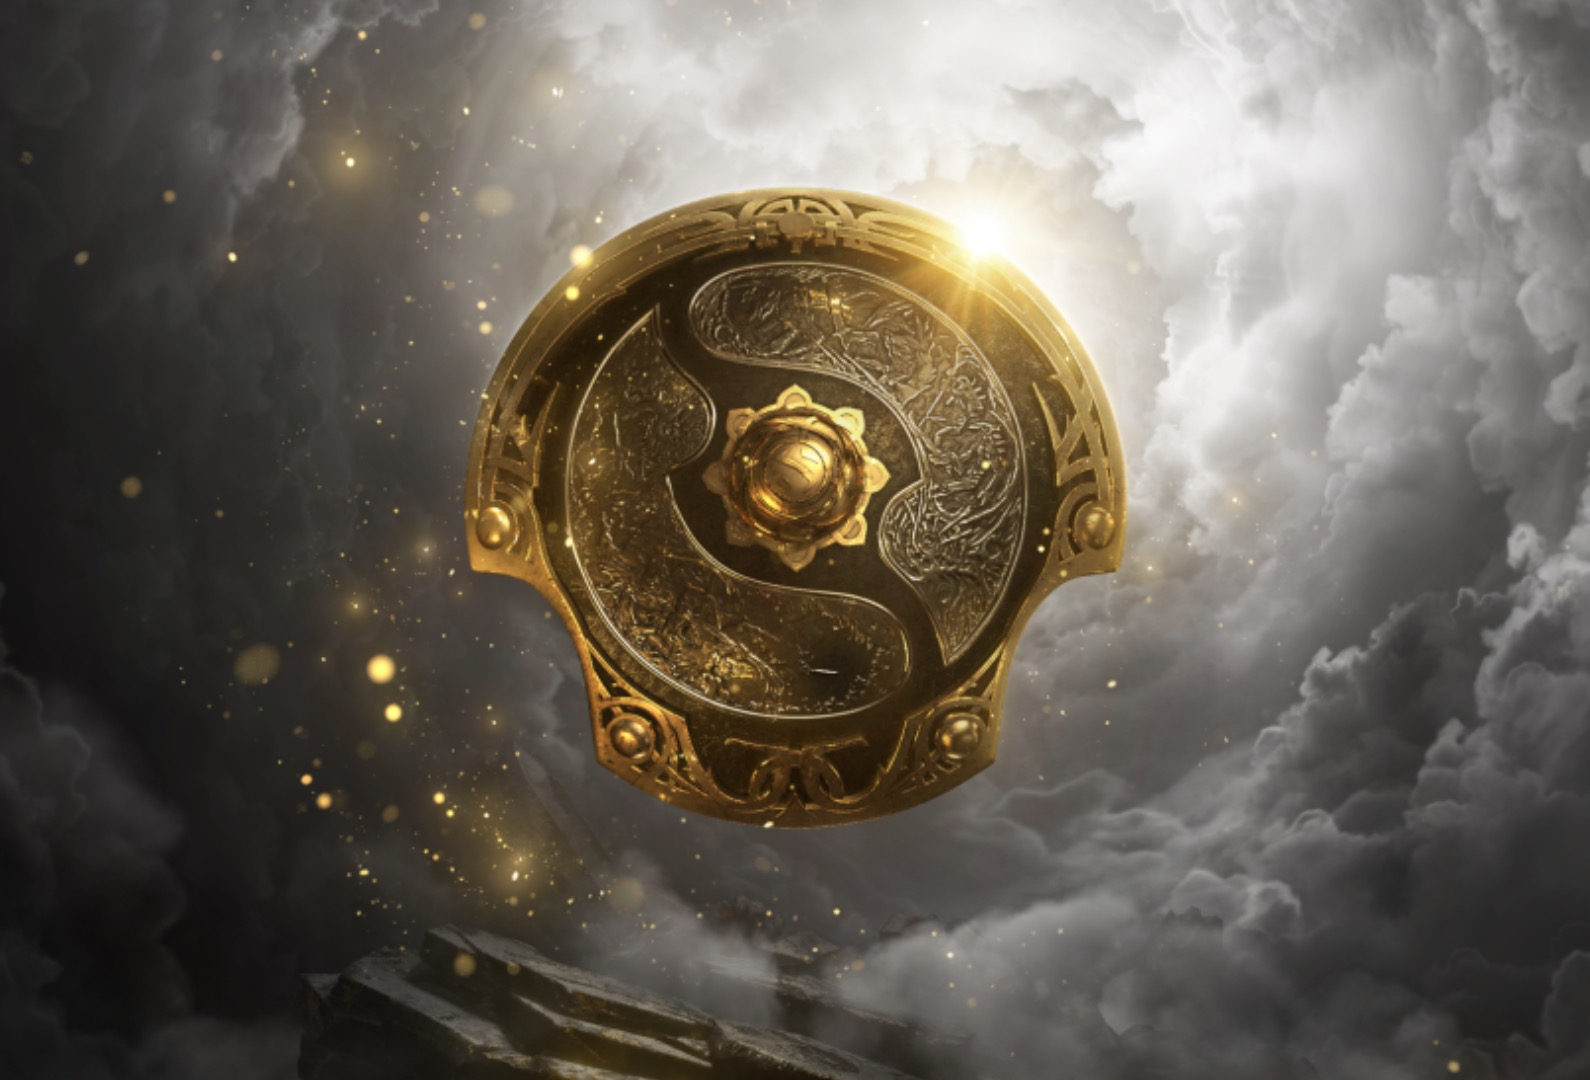 International 10 China Qualifier Results and Predictions